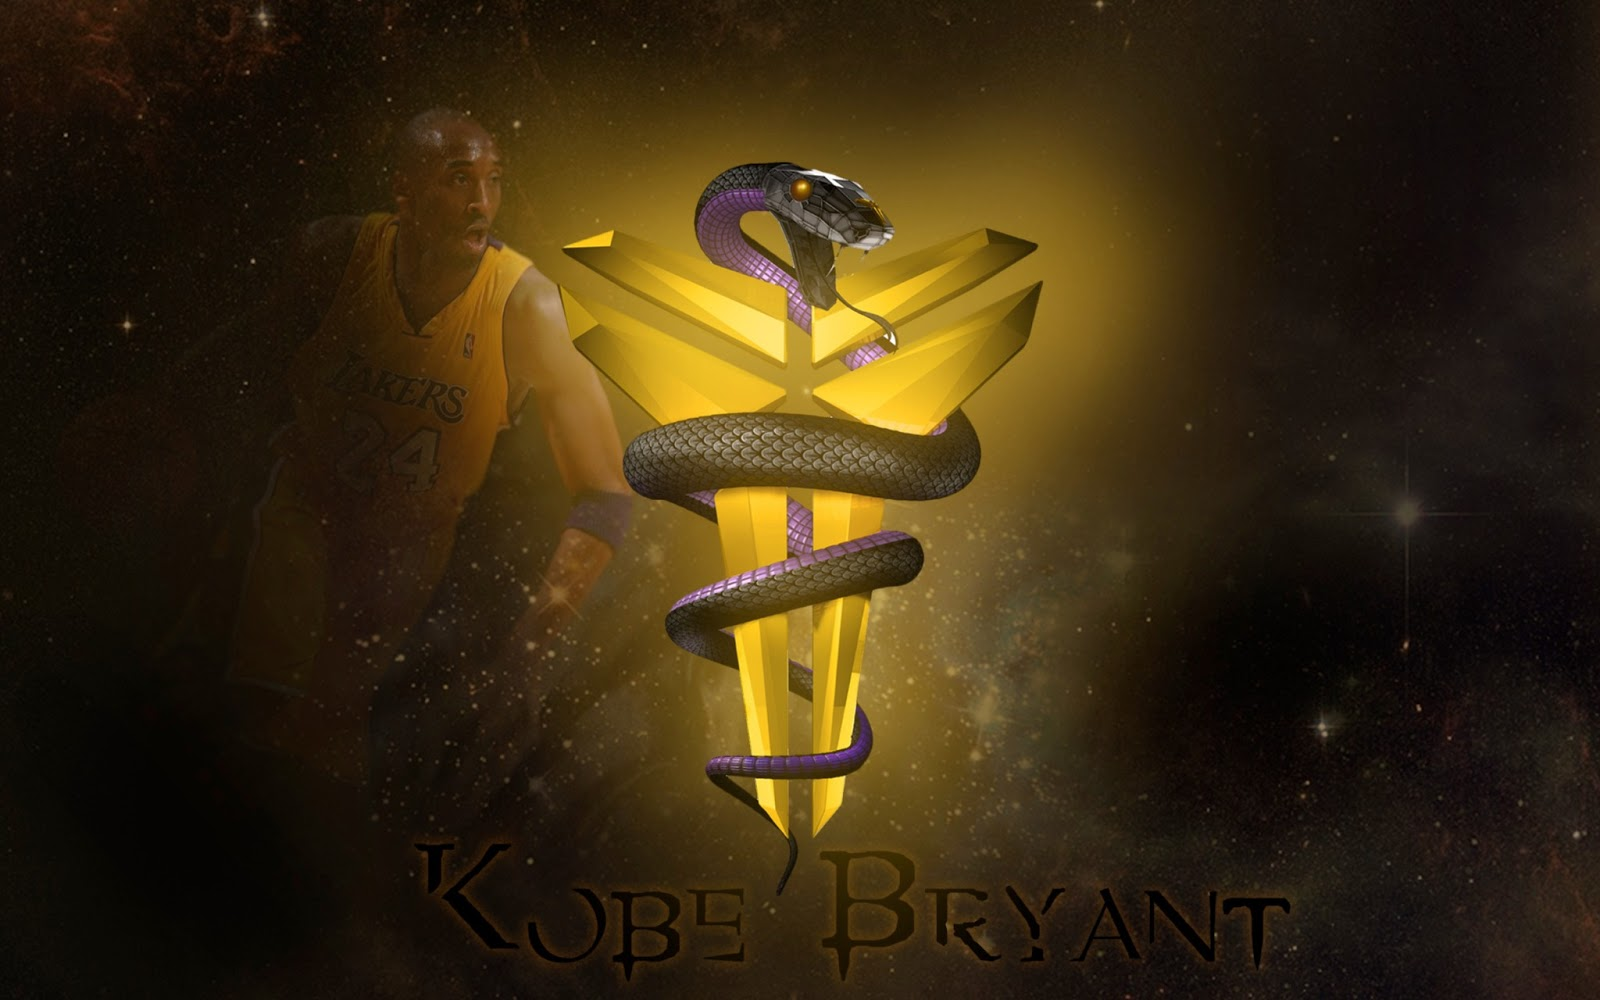 los angeles dcb5d 645fc kobe bryant logo 4 HD Wallpaper Basketball Wallpapers 1600x1000